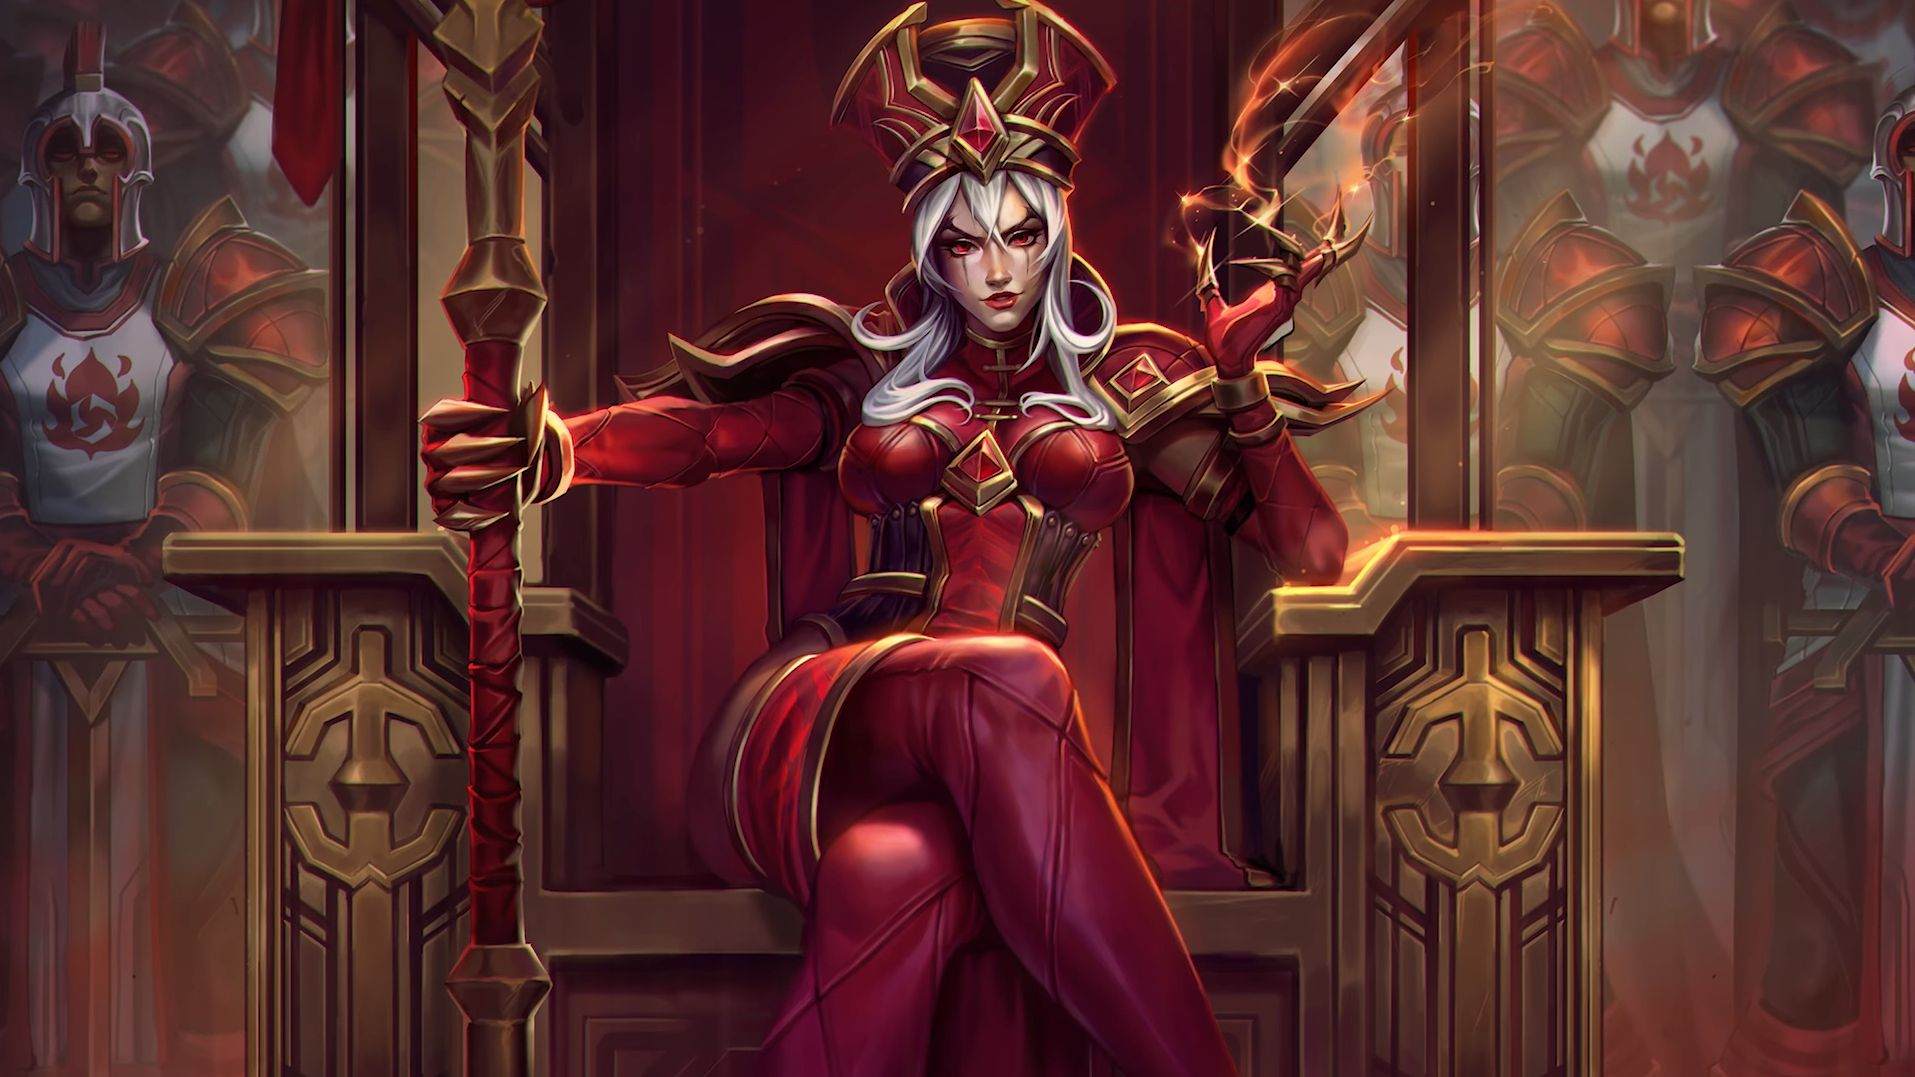 HotS Whitemane Full Artwork